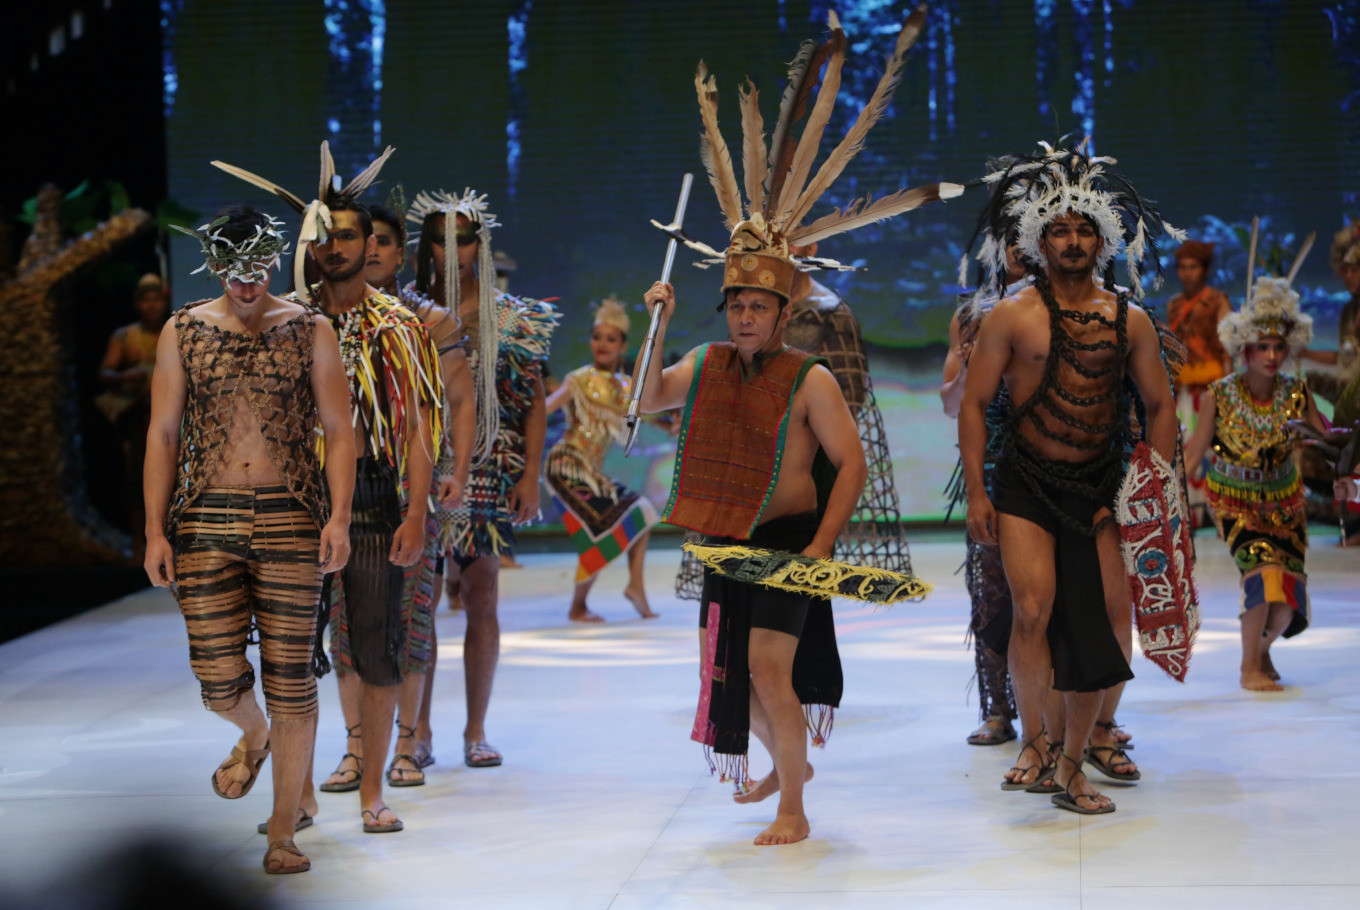 Models walk down the catwalk accompanied by traditional dancers in 'Viro Dream', a fashion show and art performance resulting from a collaboration between designer Musa Widyatmodjo and Viro.